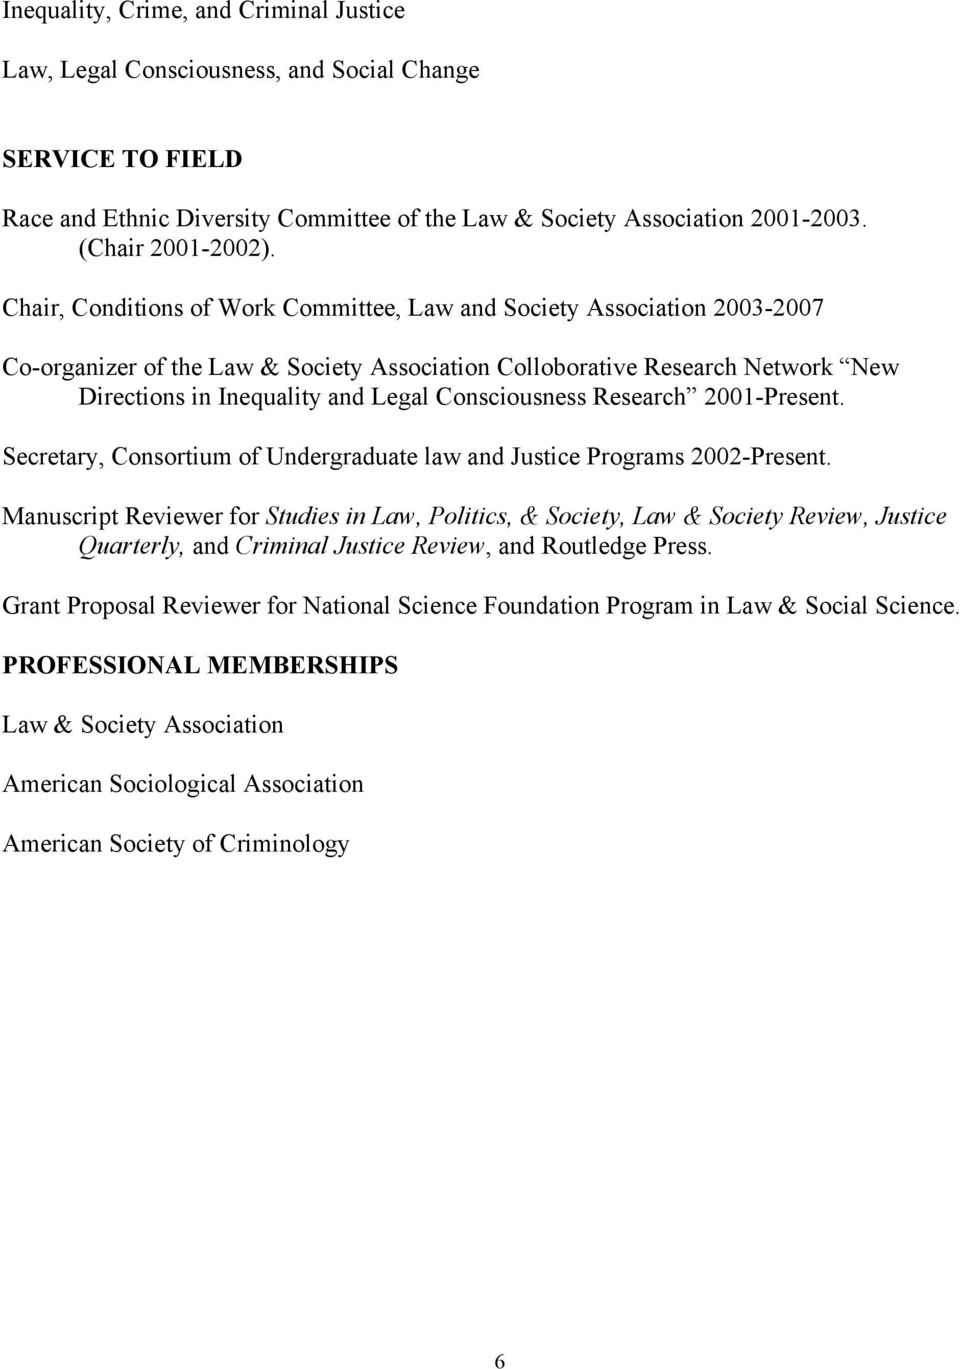 Consciousness Research 2001-Present. Secretary, Consortium of Undergraduate law and Justice Programs 2002-Present.